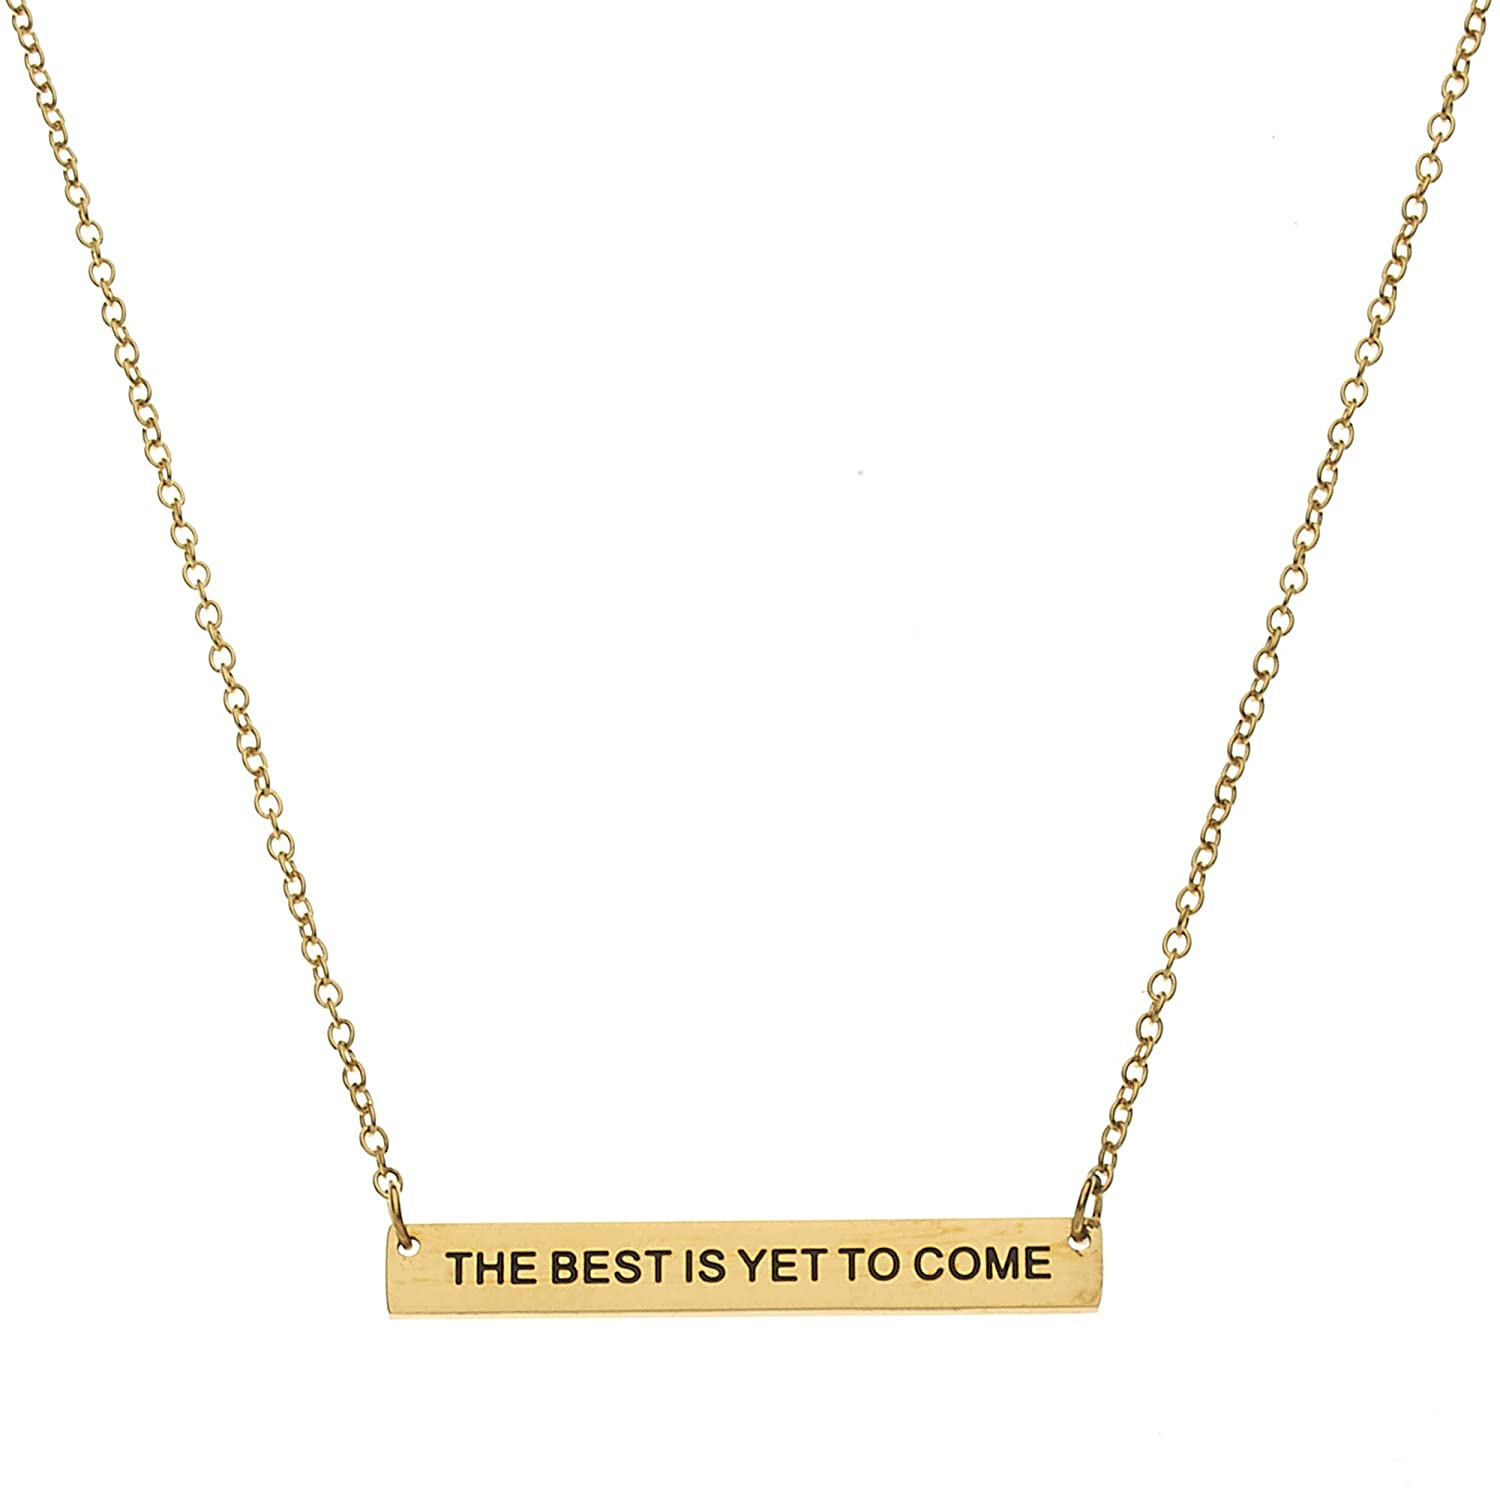 Inspirational Necklace Beads /& Pearls Jewelry The Best is Yet to Come Bar Pendant Necklace 18 Chain with Extender Inspirational Gifts for Women